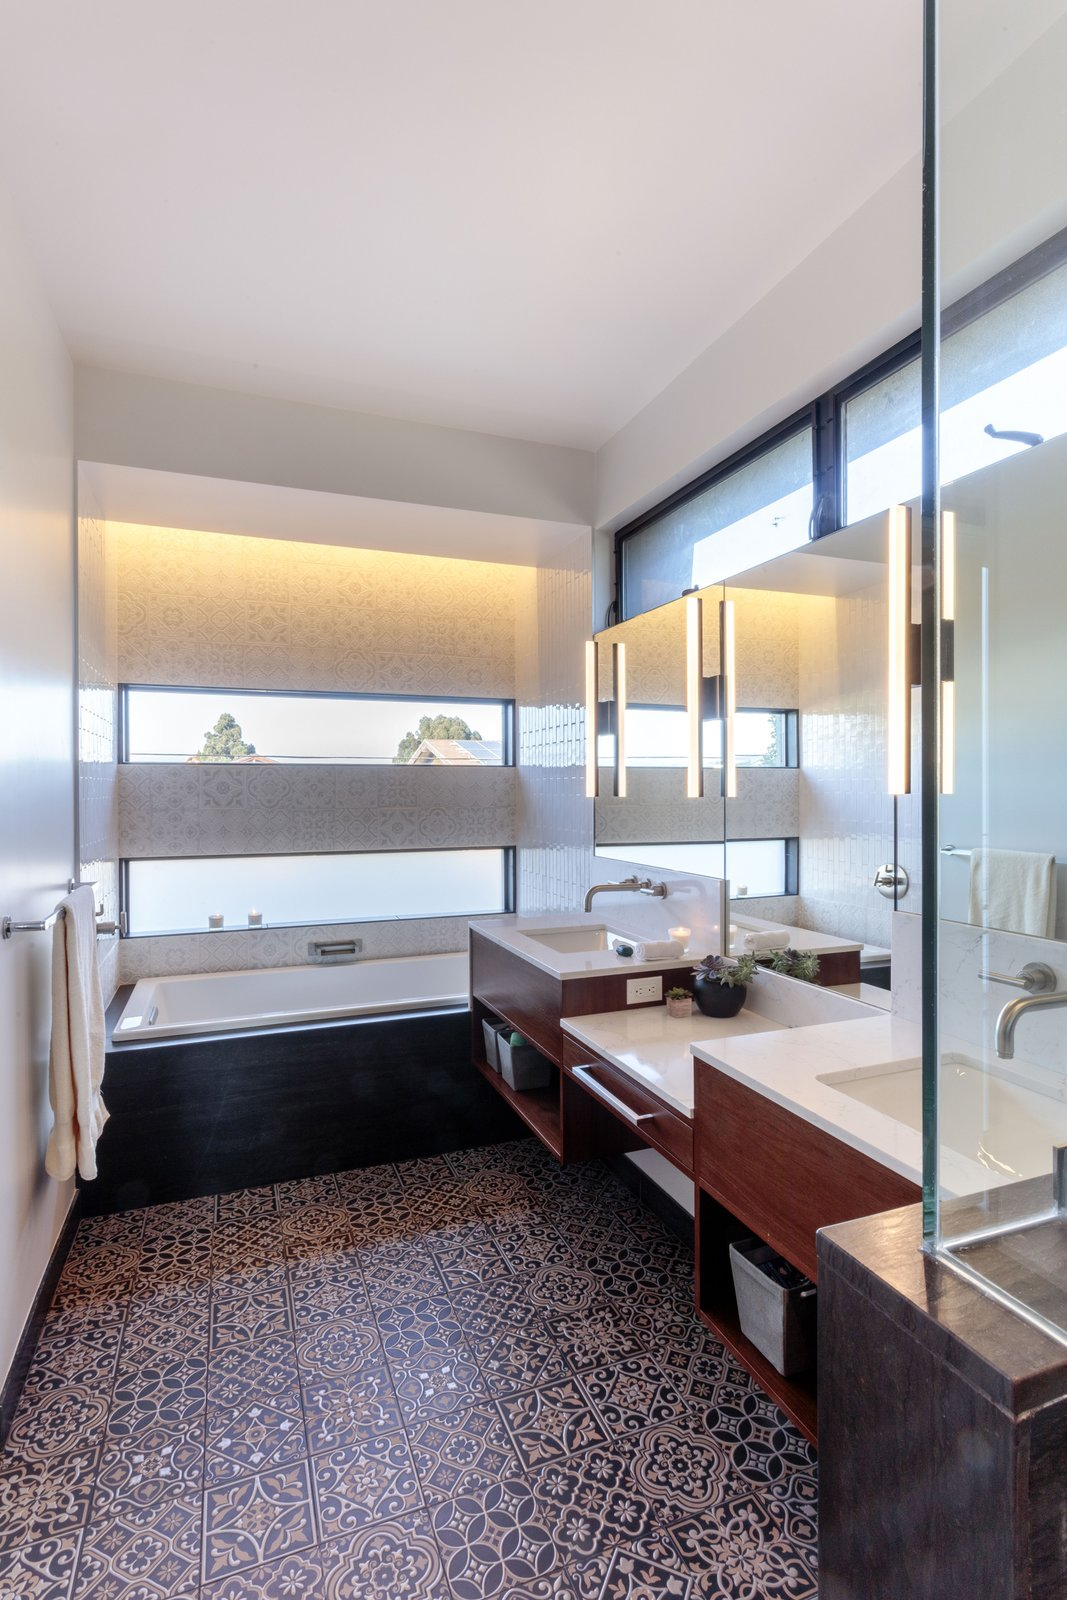 Bath Room, Ceramic Tile Floor, Engineered Quartz Counter, Undermount Sink, Drop In Tub, Enclosed Shower, Accent Lighting, and Wall Lighting master bath  Legal House